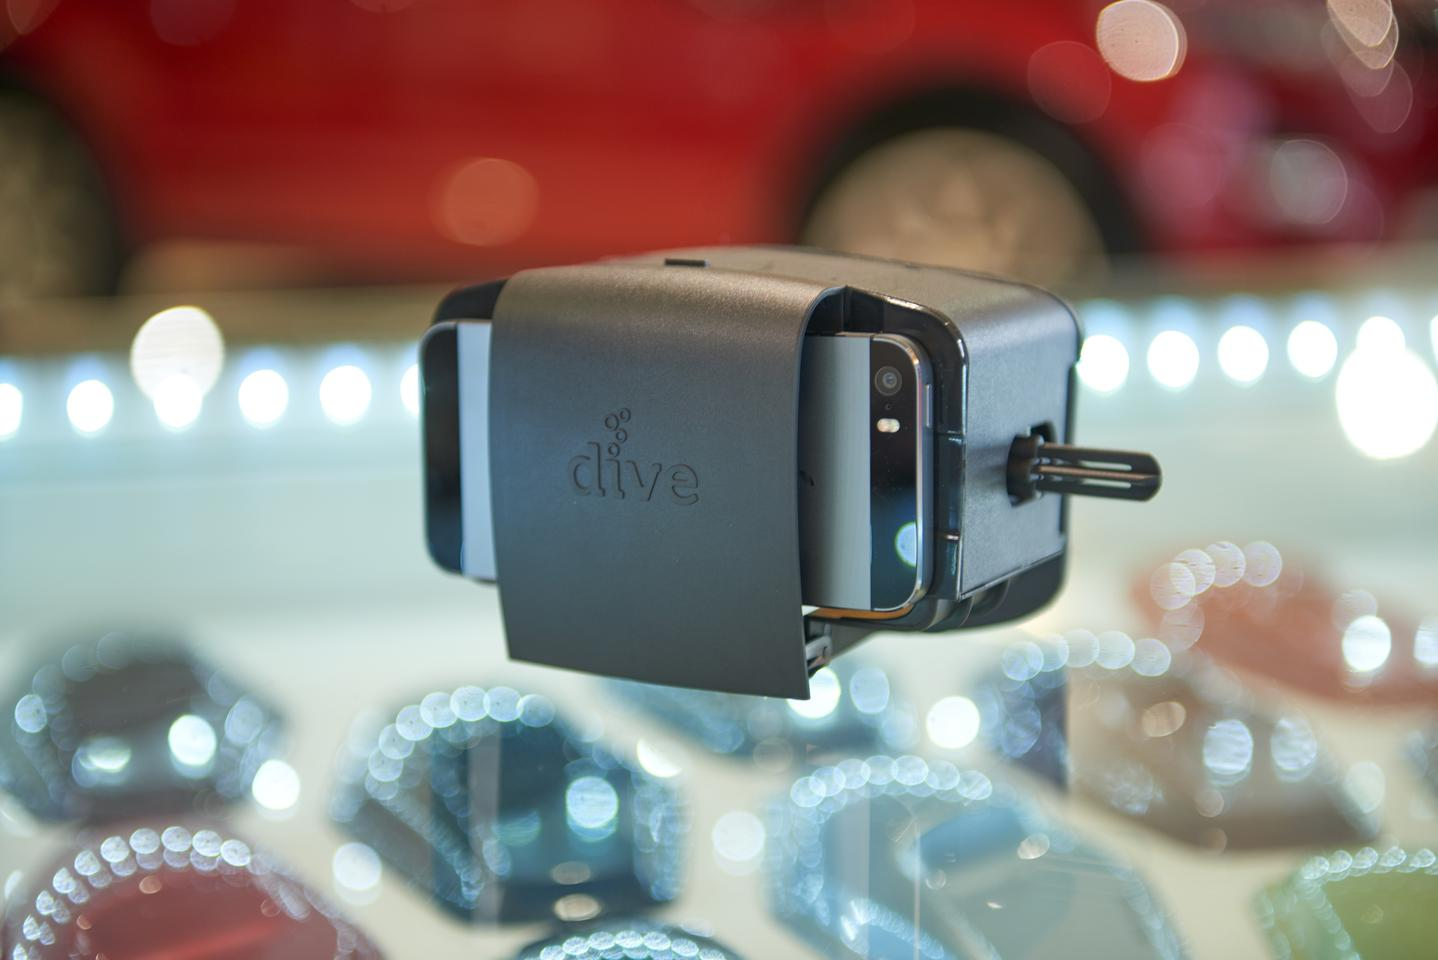 The Durovis Dive headset